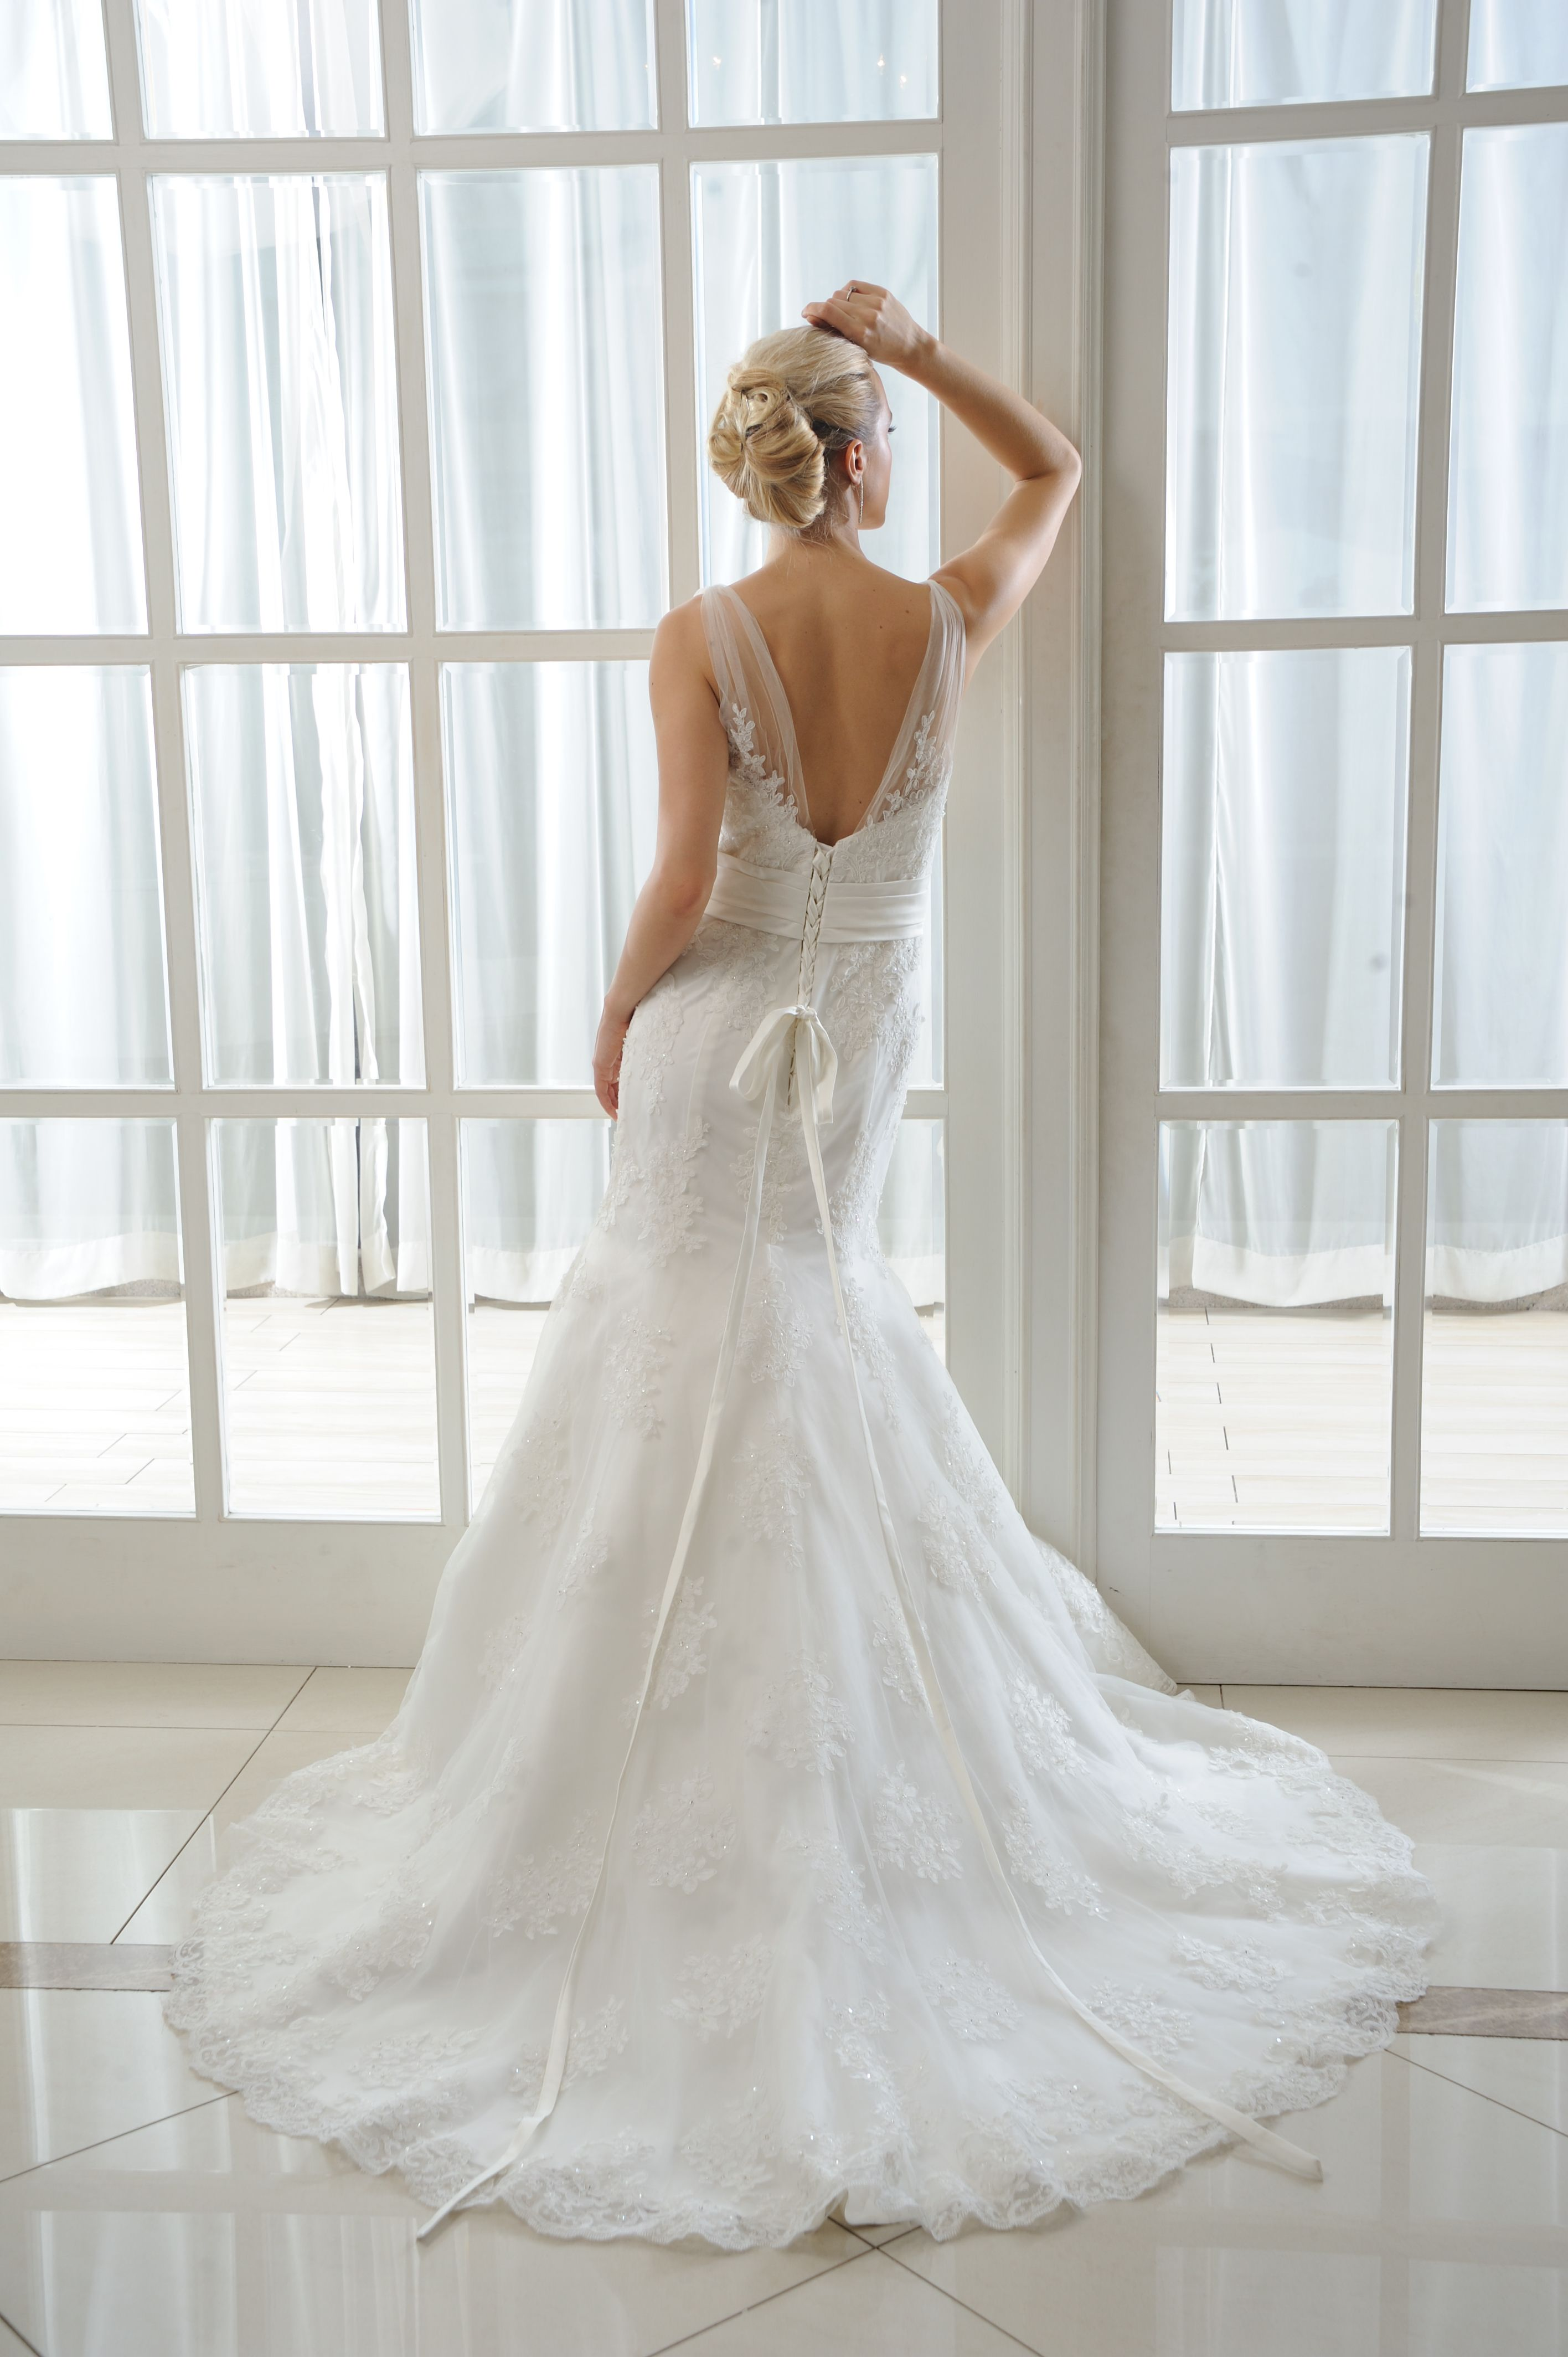 Millie Brides by Harvee lace & tulle fishtail wedding